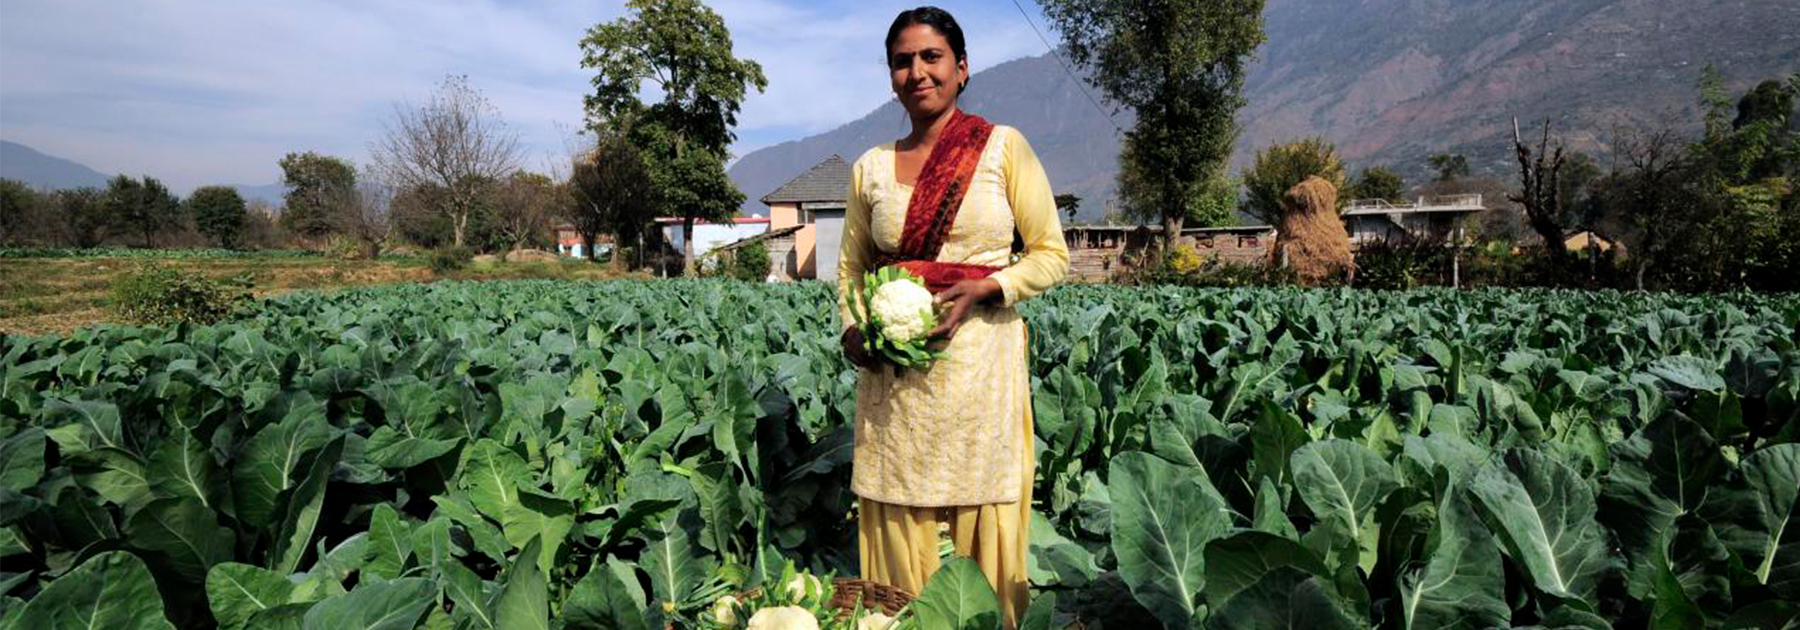 A farmer harvests this season's cauliflower crop near Kullu town. (Neil Palmer (CIAT), licensed under CC BY-SA 2.0)